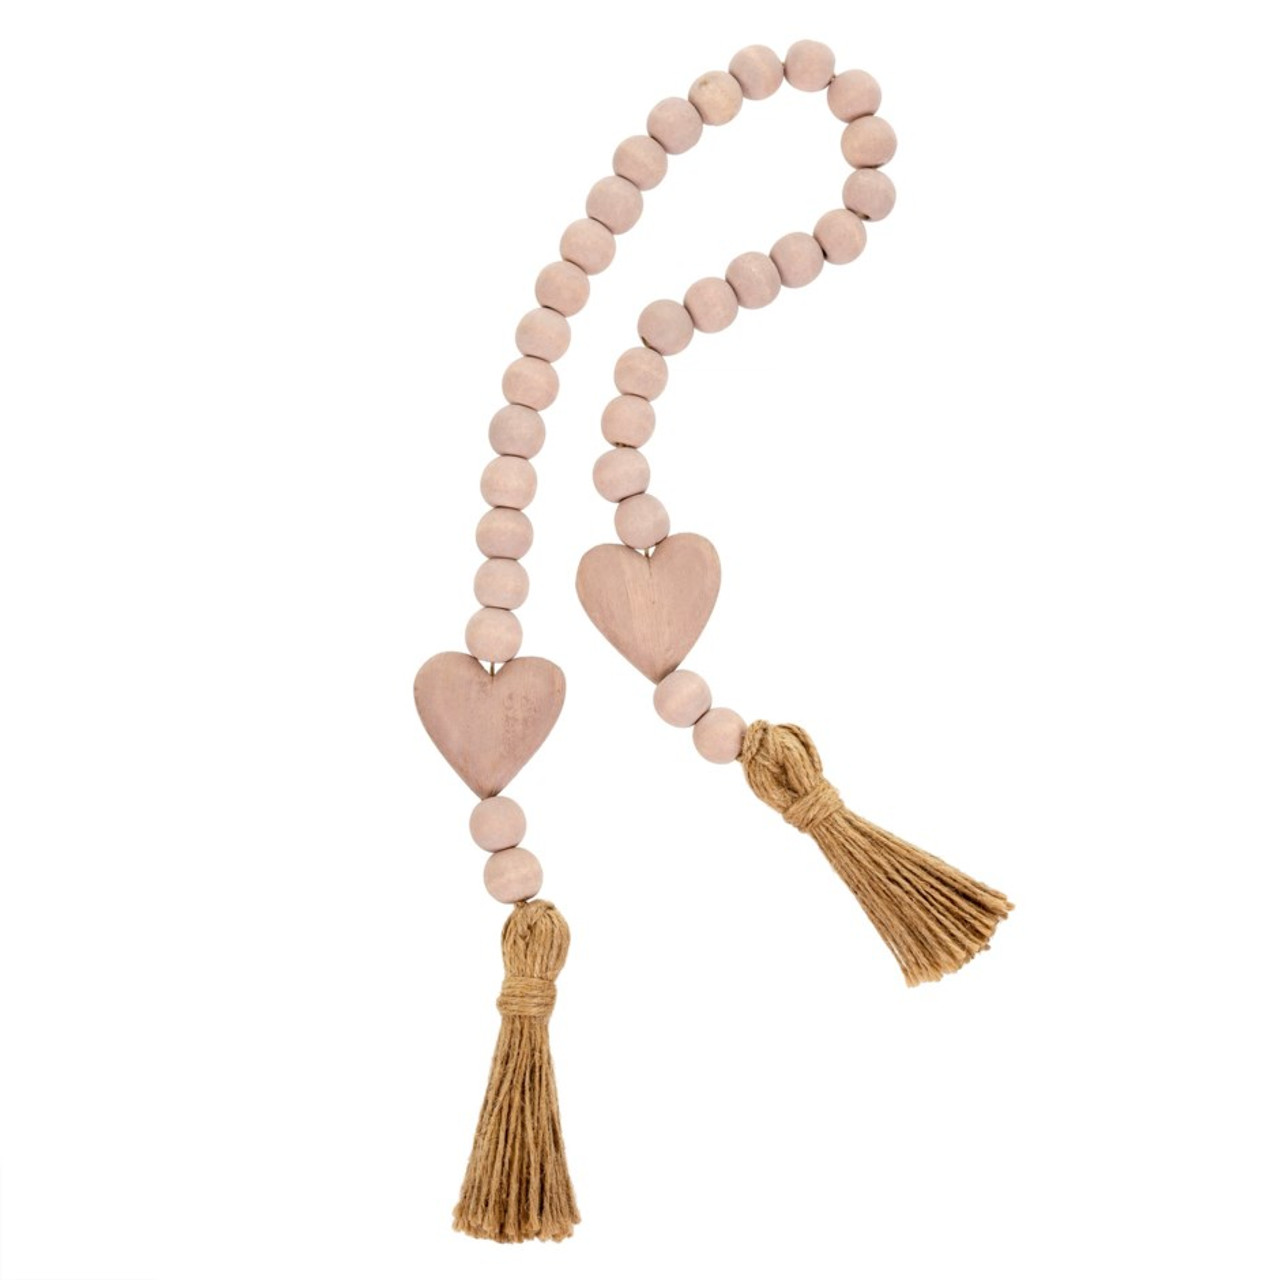 HEART BLESSING BEADS - PINK